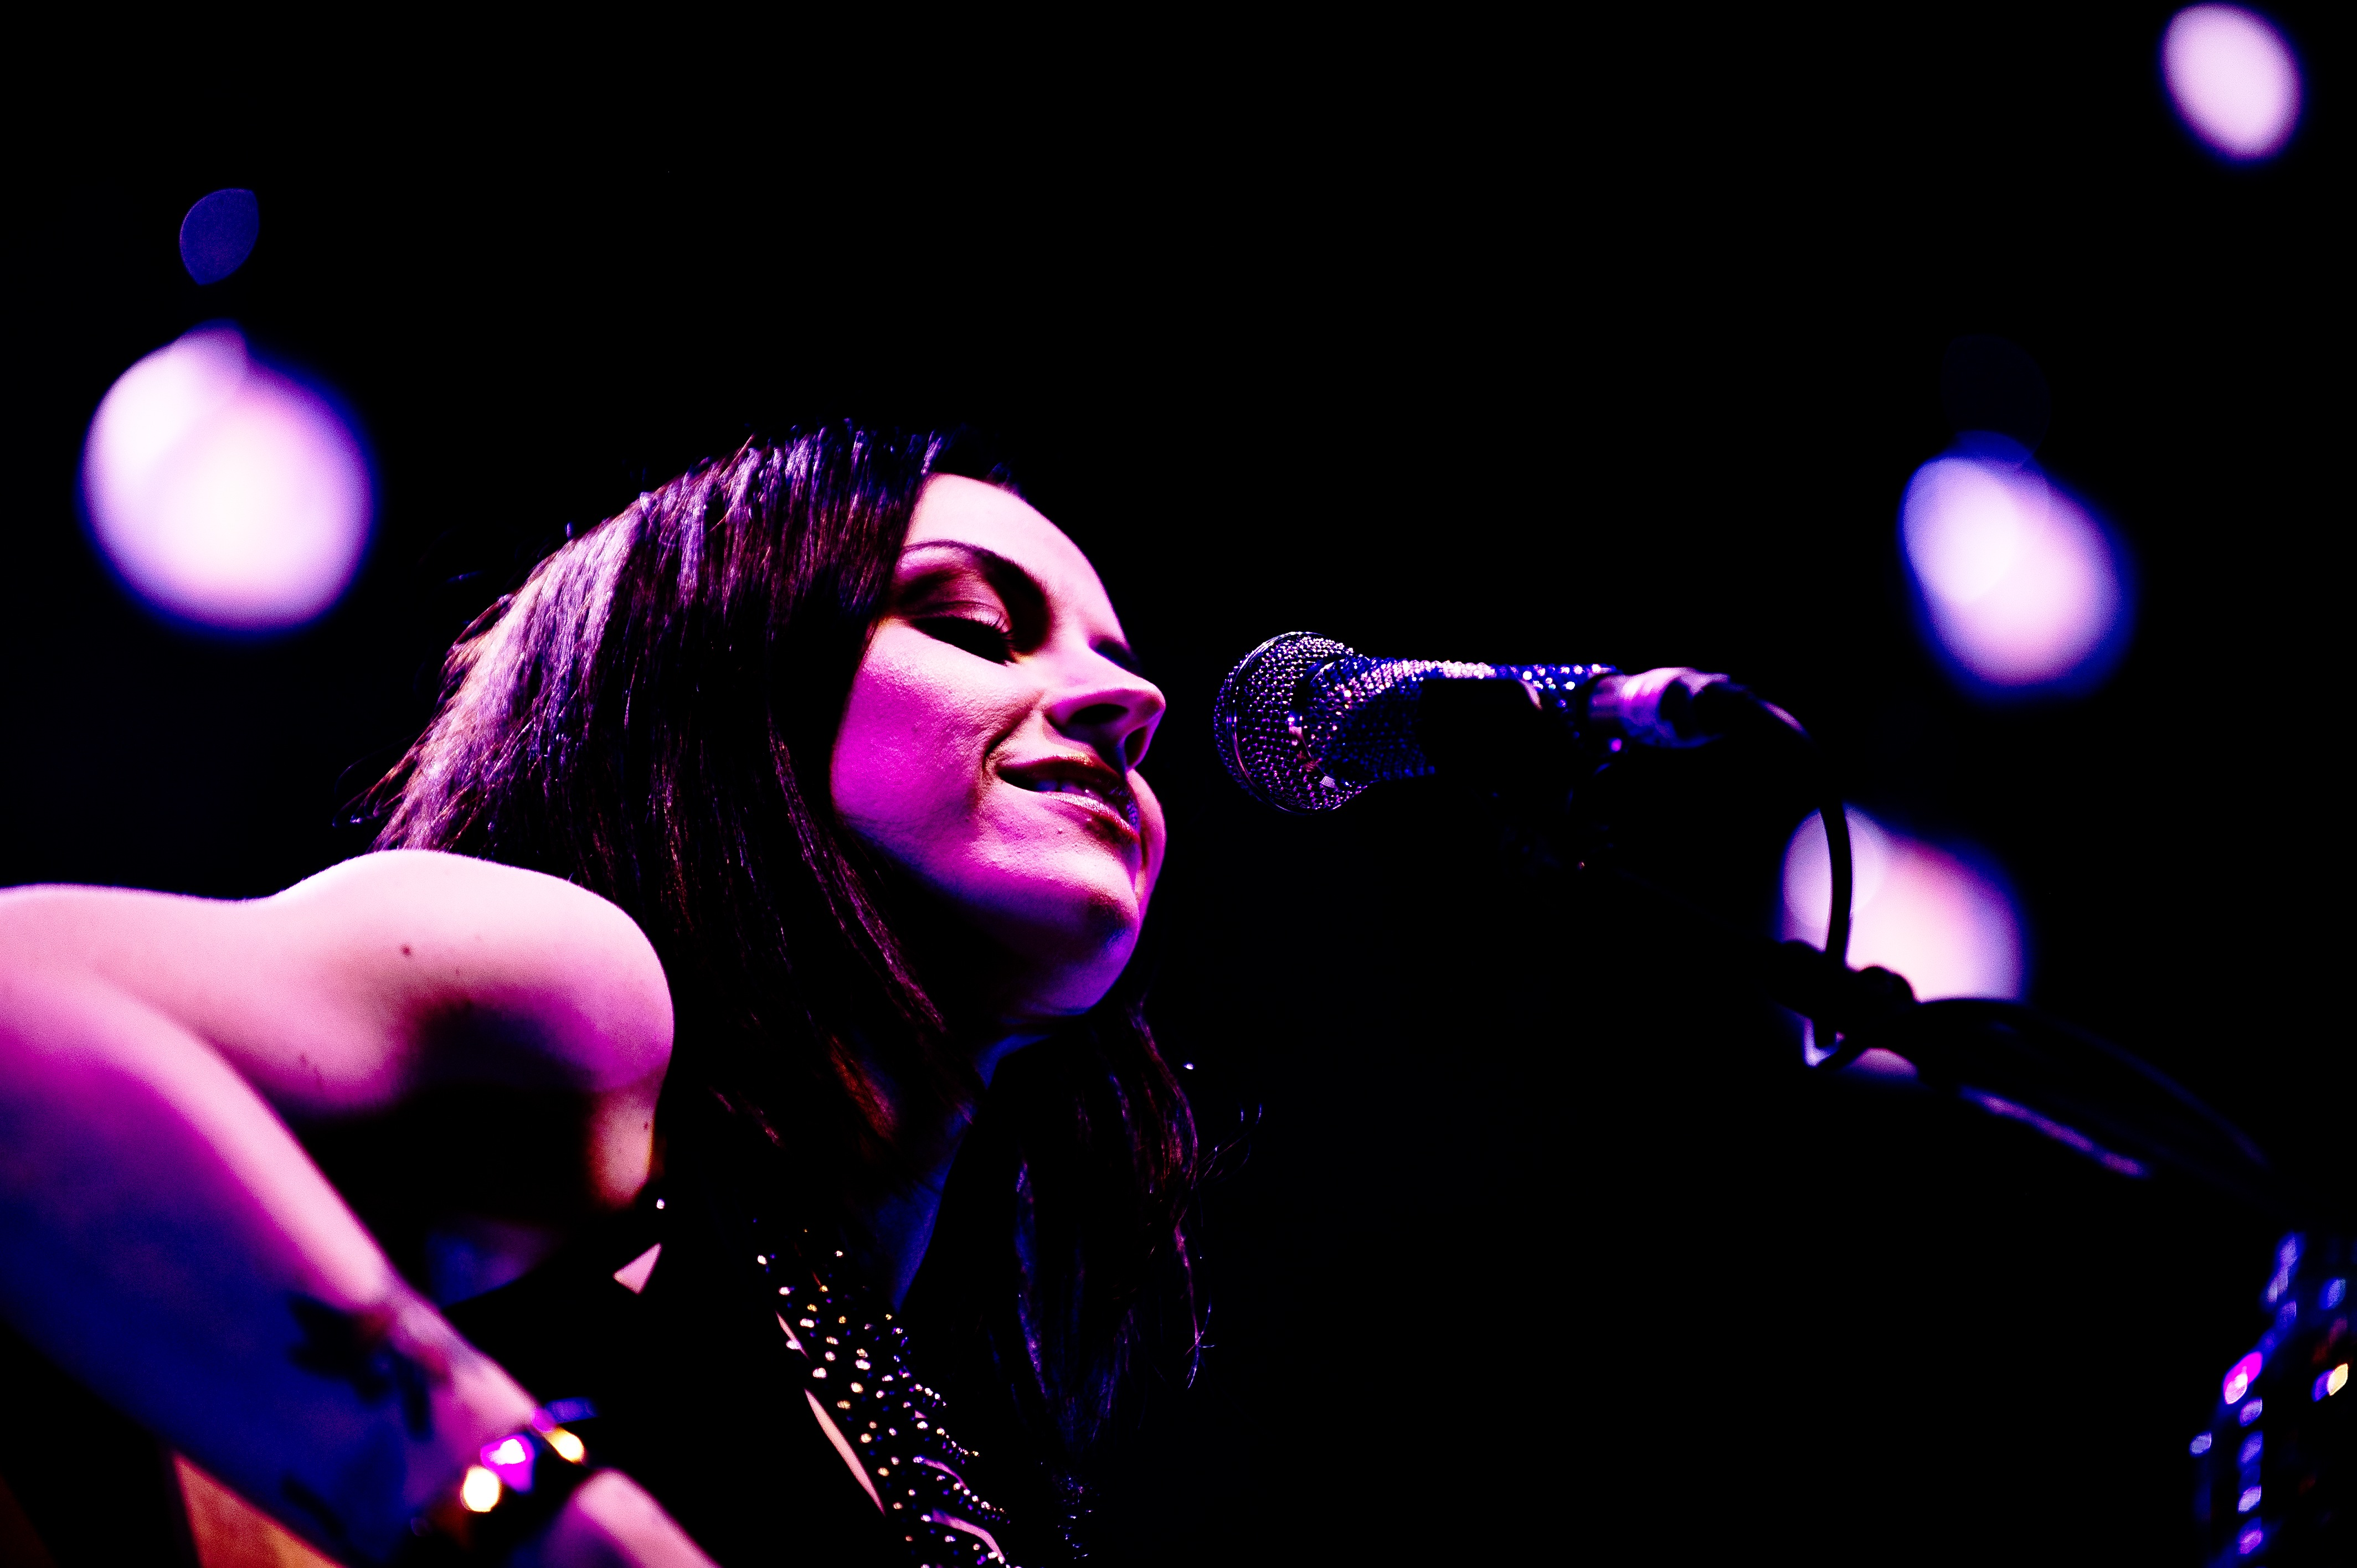 Amy Macdonald at Rudolstadtfestival 2017, Photo credit: Doris Joosten